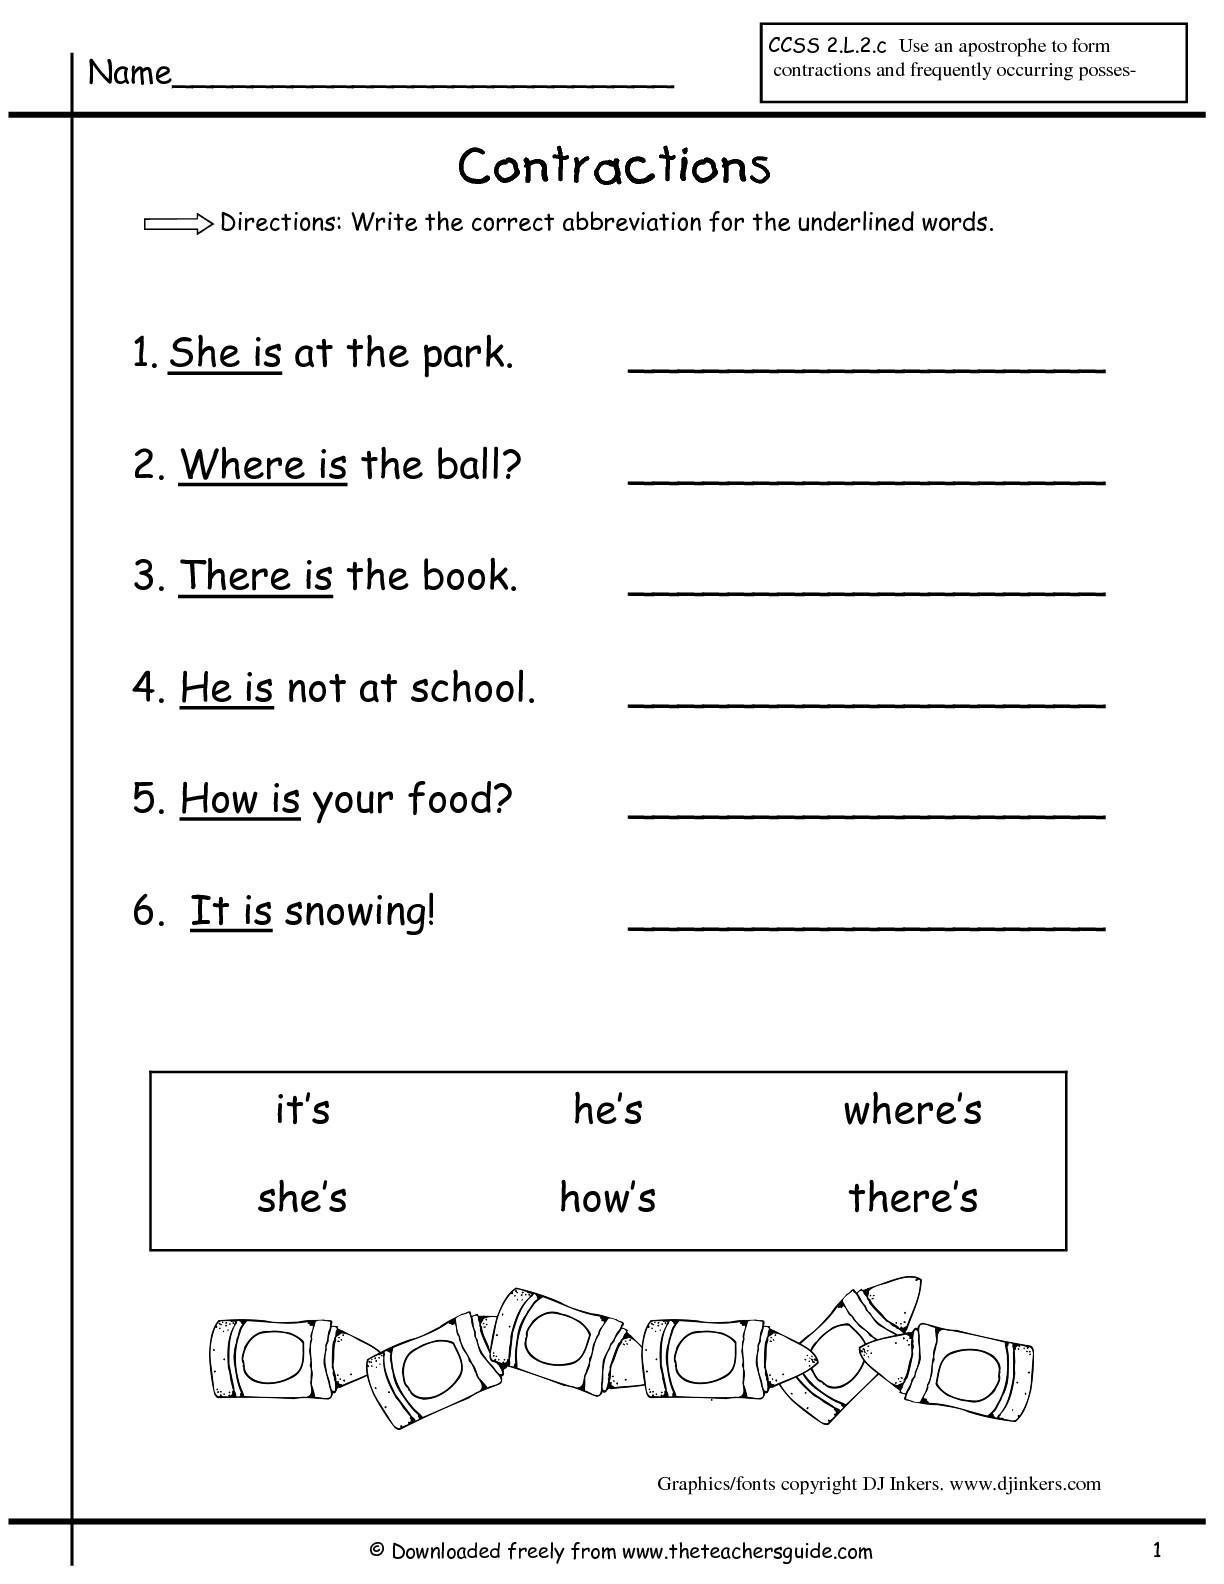 17 Best Images Of For First Grade Contraction Worksheets